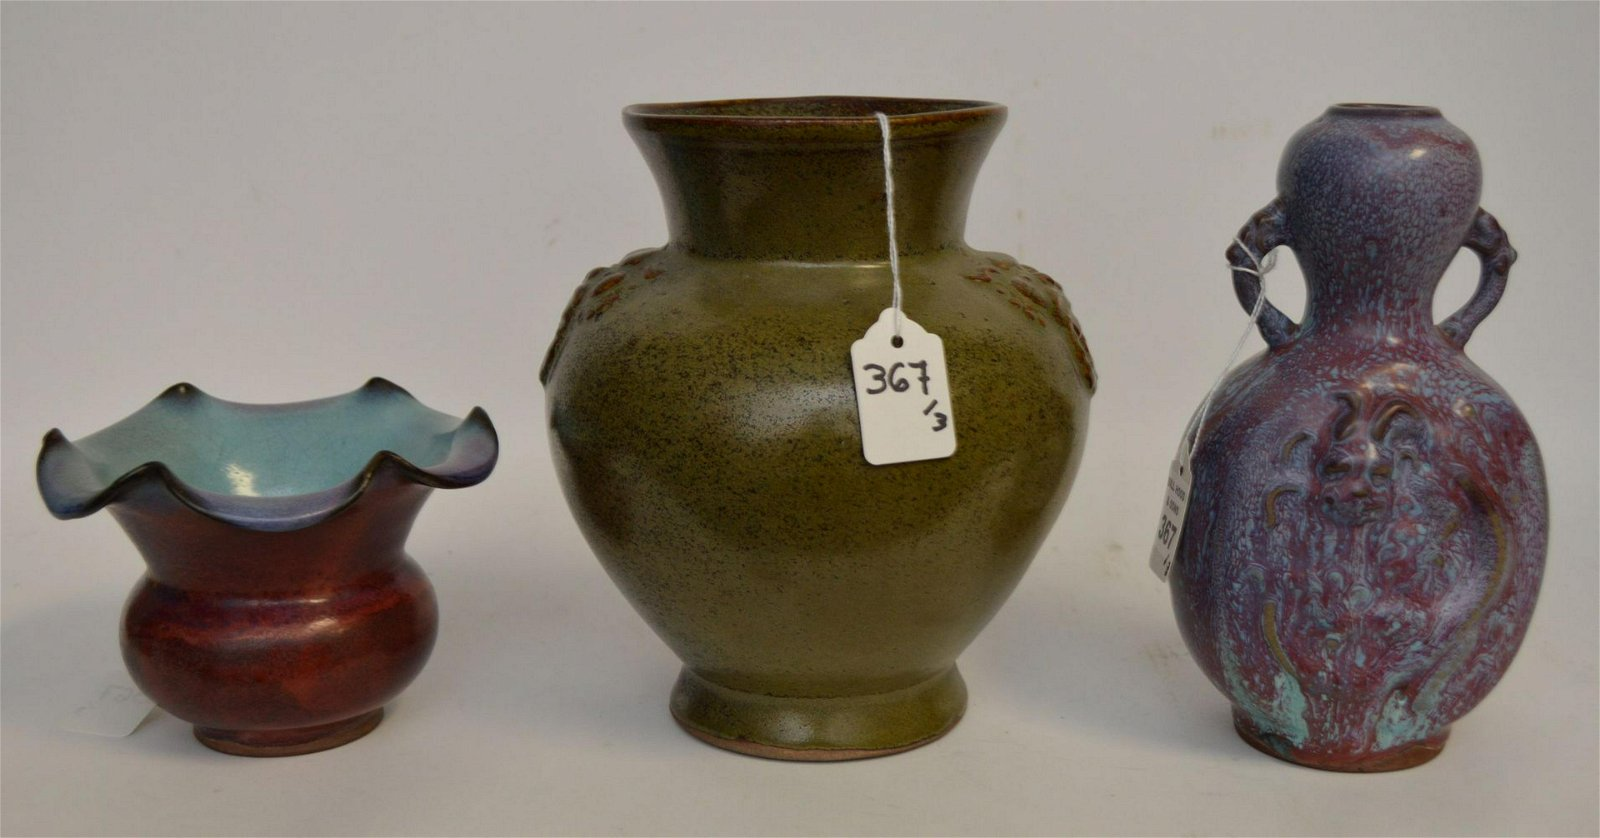 3 Chinese Glazed Pottery Articles.  Green Glazed